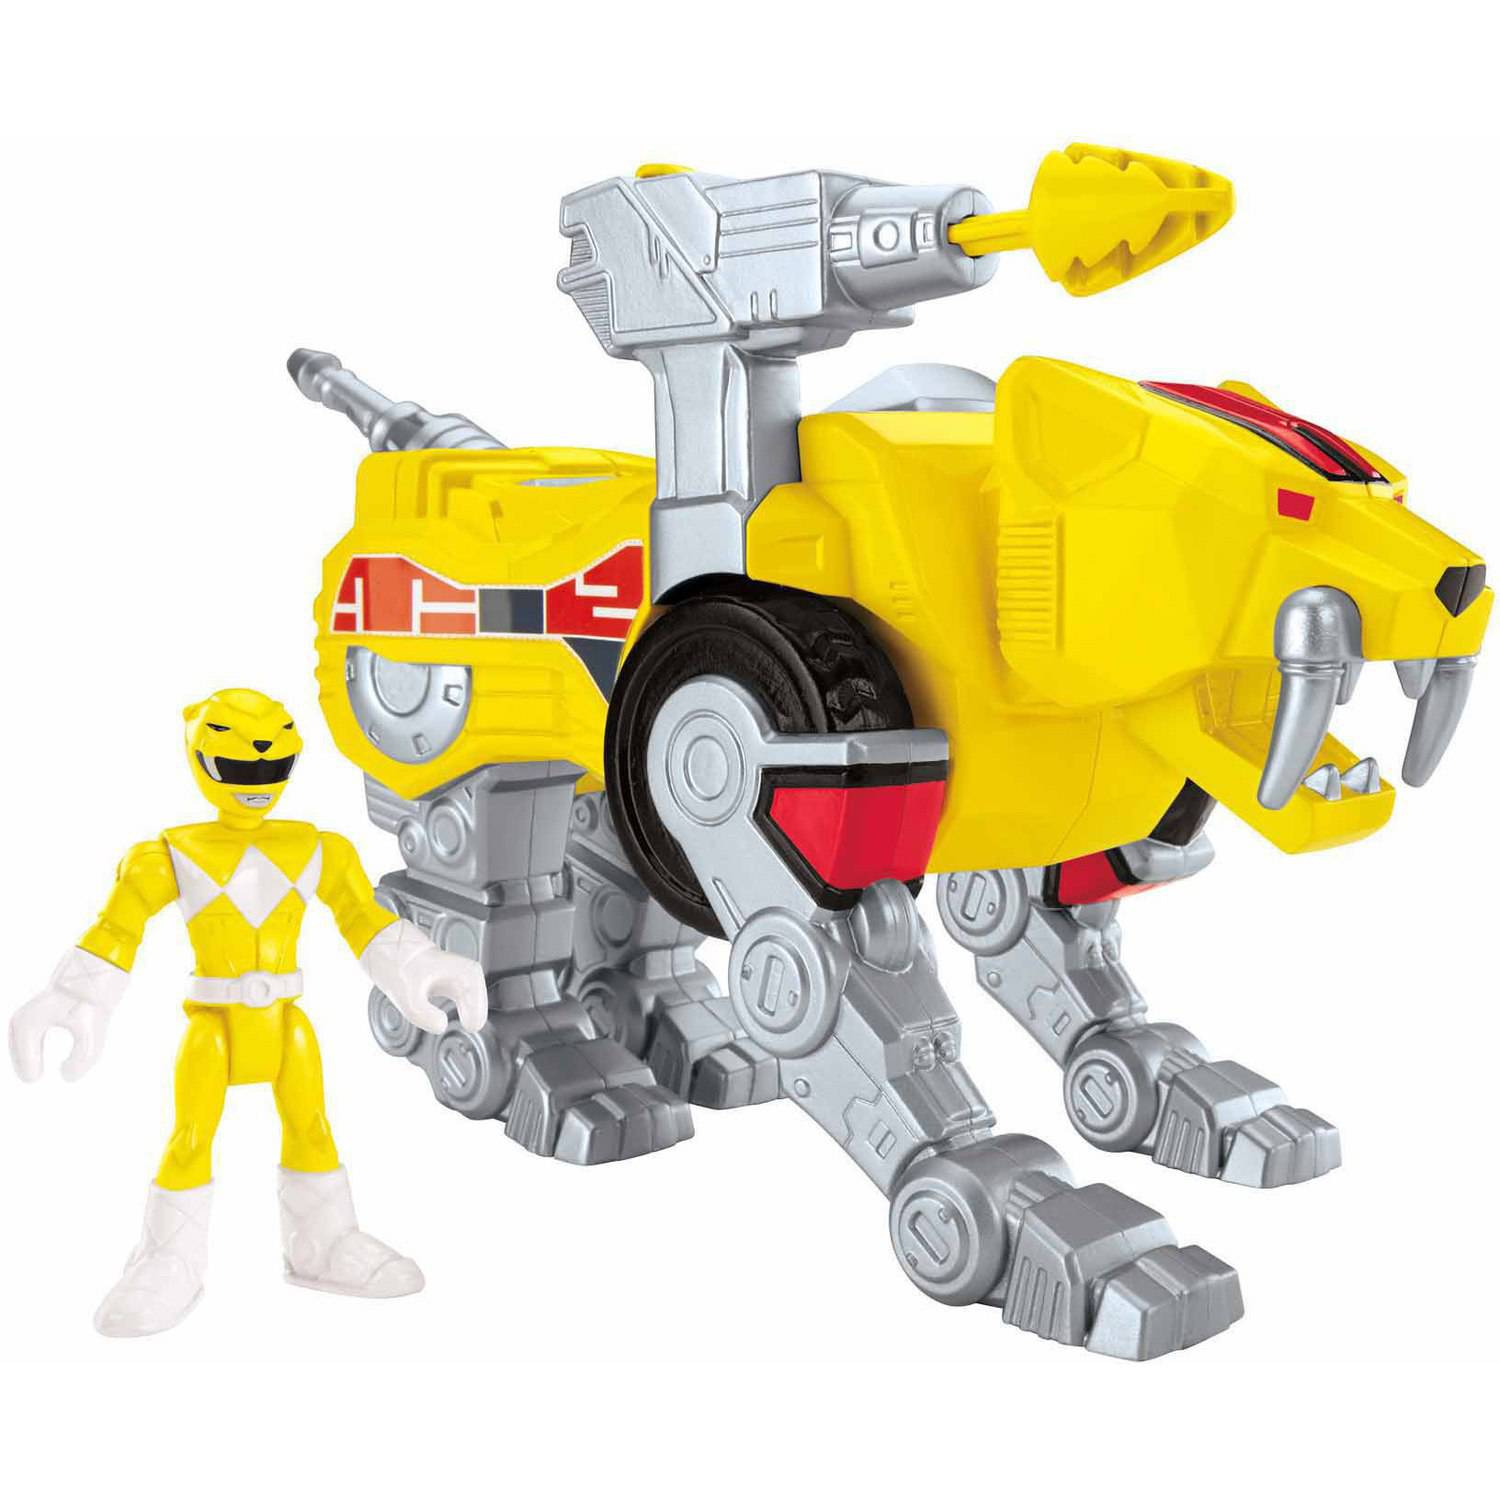 IMaginext Power Rangers Yellow Ranger and Sabretooth Zord by FISHER PRICE